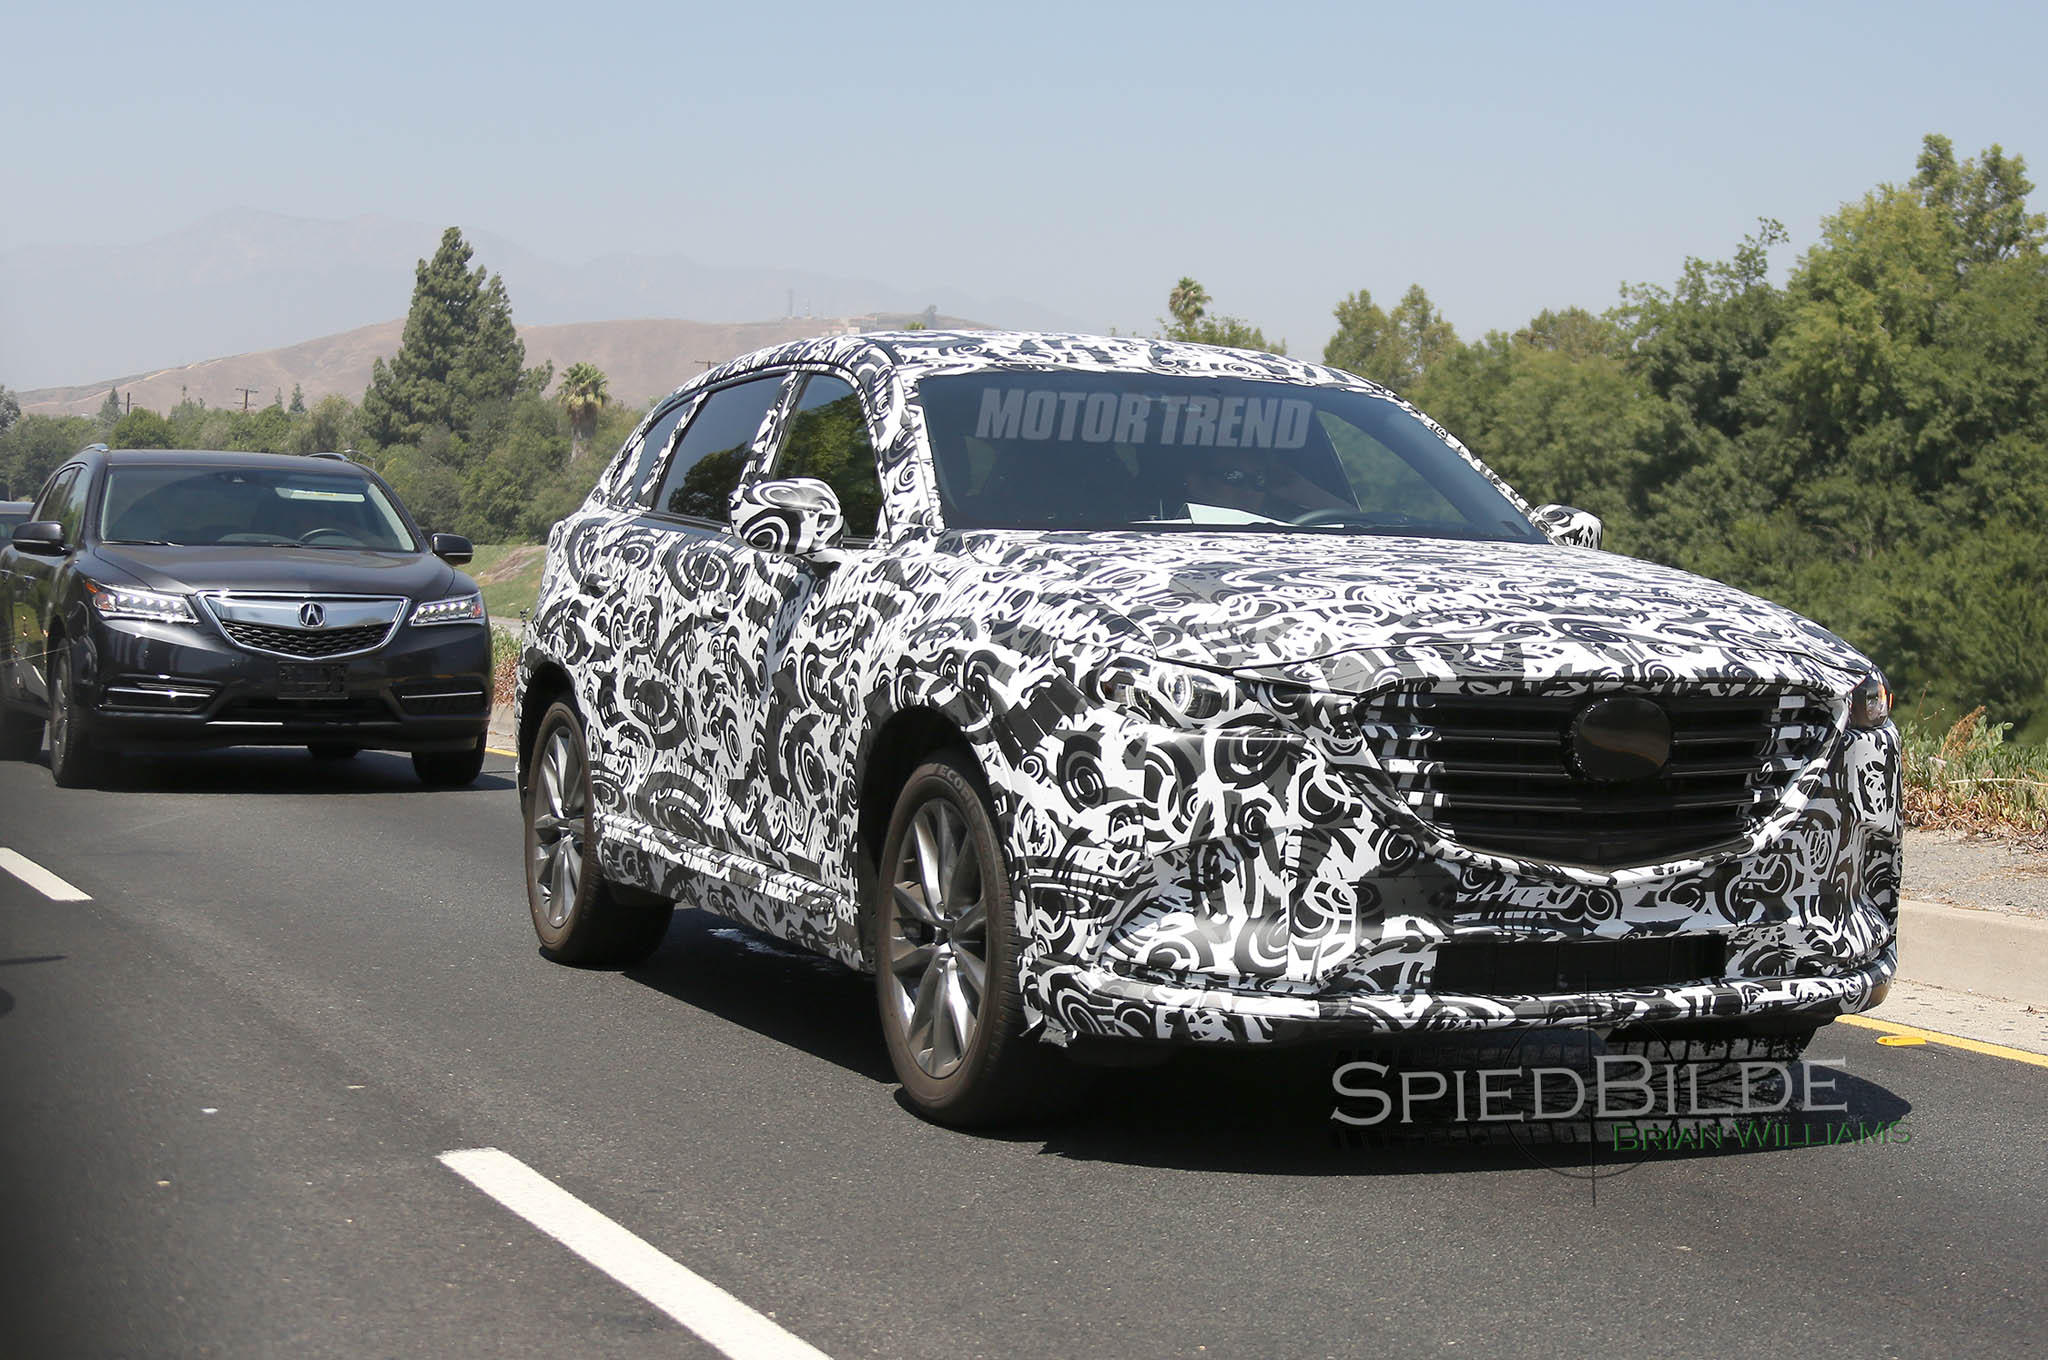 Next-Gen Mazda CX-9 Prototype Caught Testing With an Acura MDX